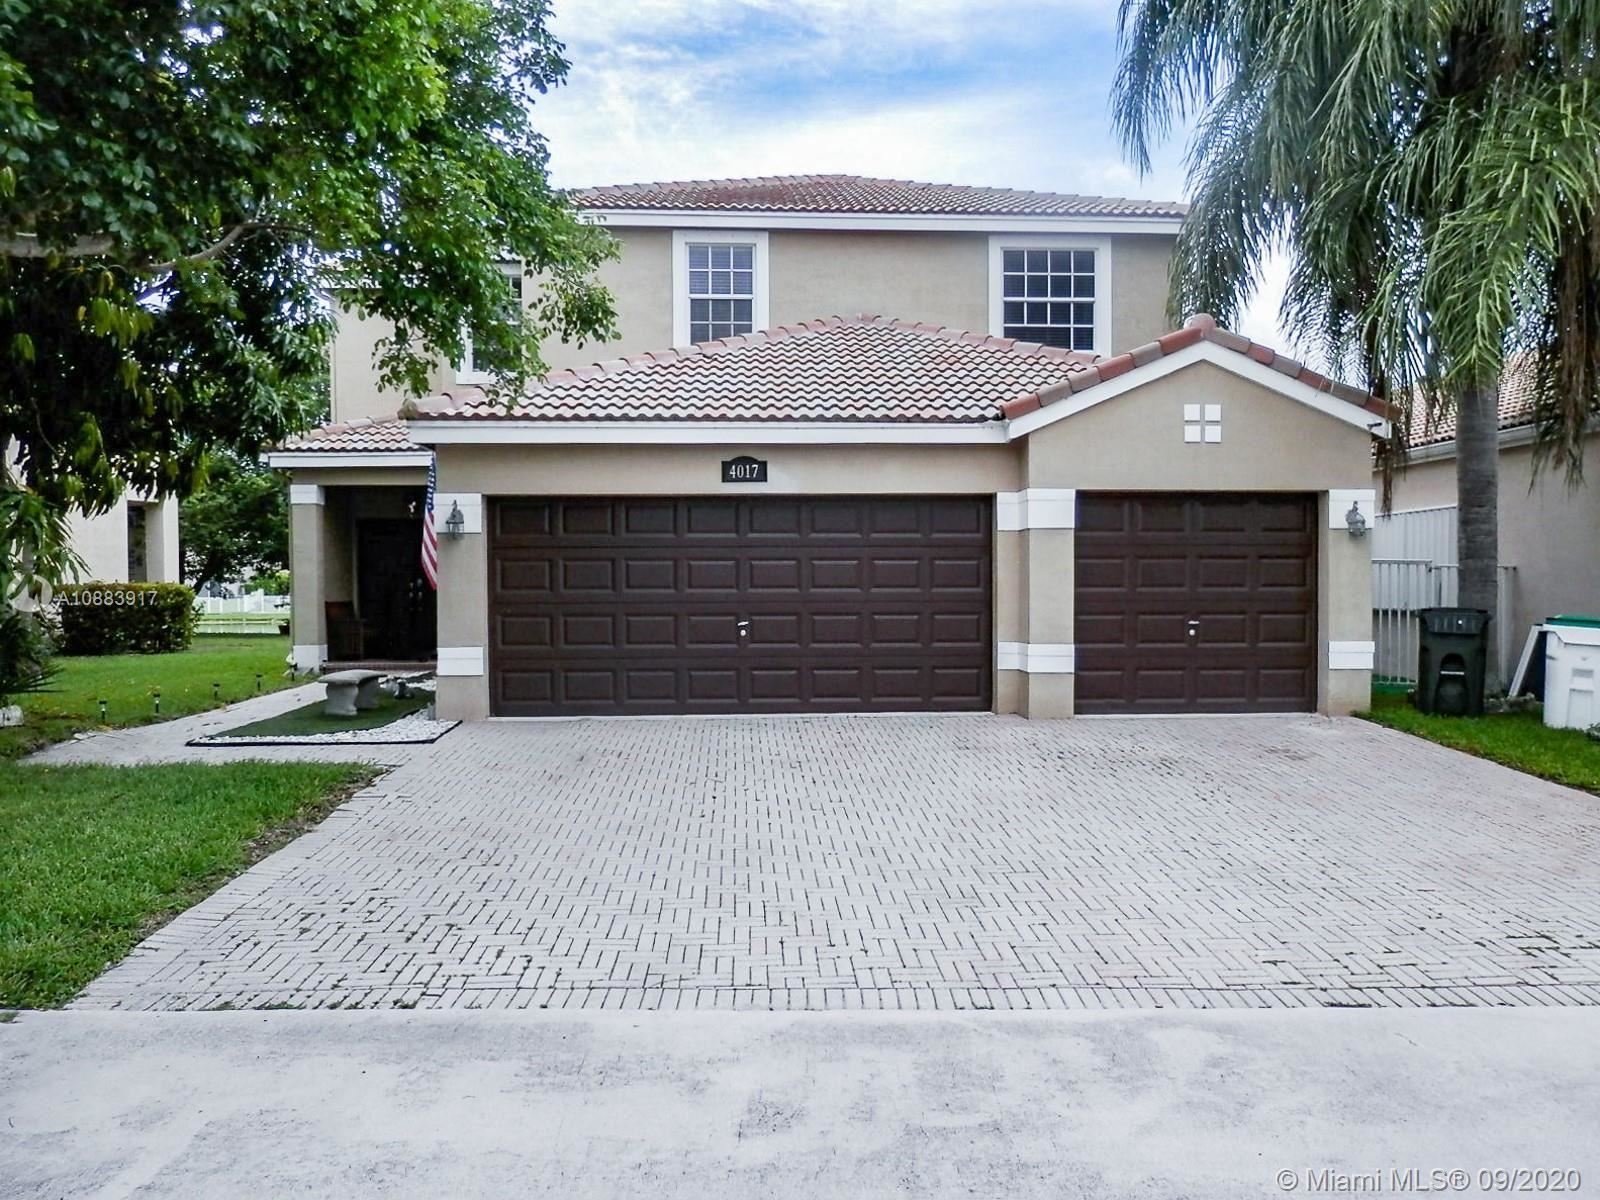 4017 NW 62nd Dr, Coconut Creek, FL 33073 - #: A10883917